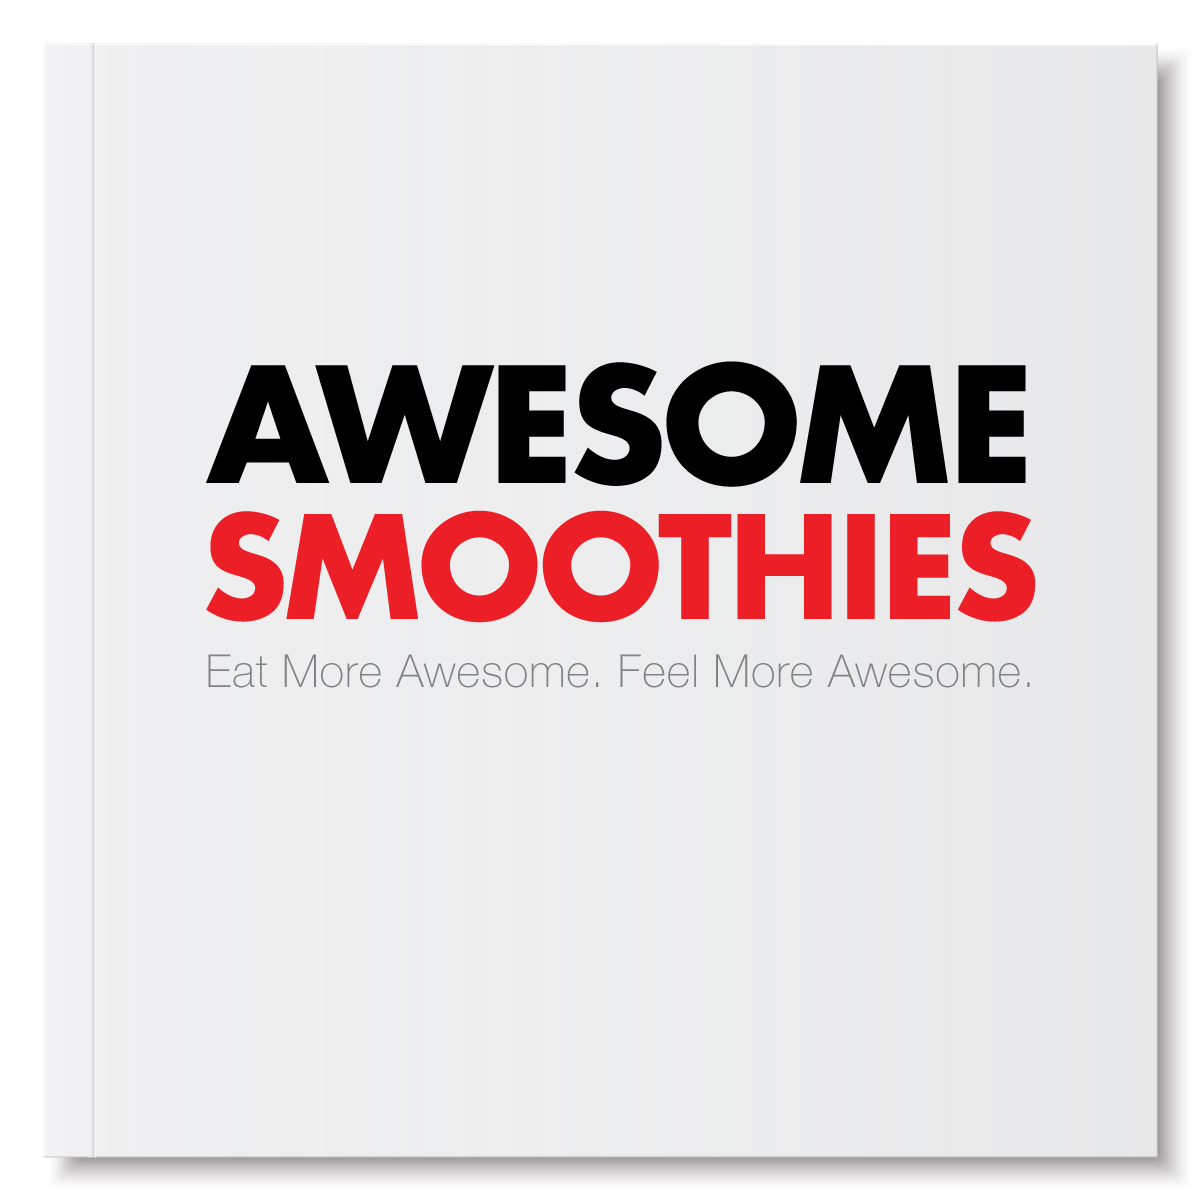 Awesome-Smoothies.jpg